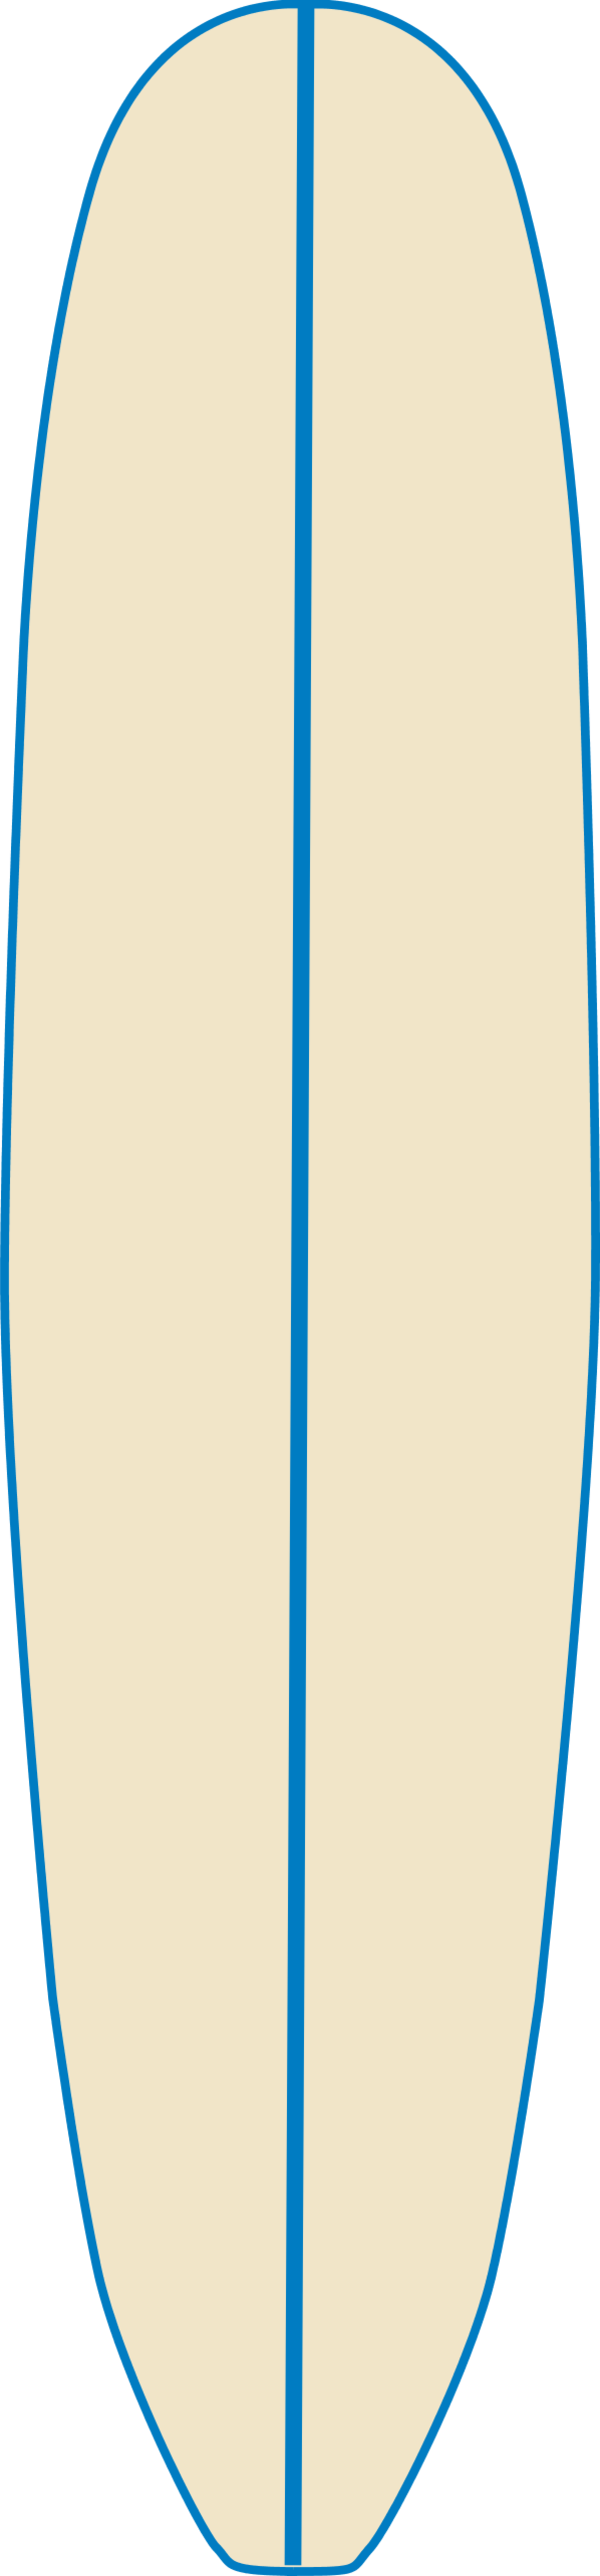 600x2578 Surfboard Clipart Outline